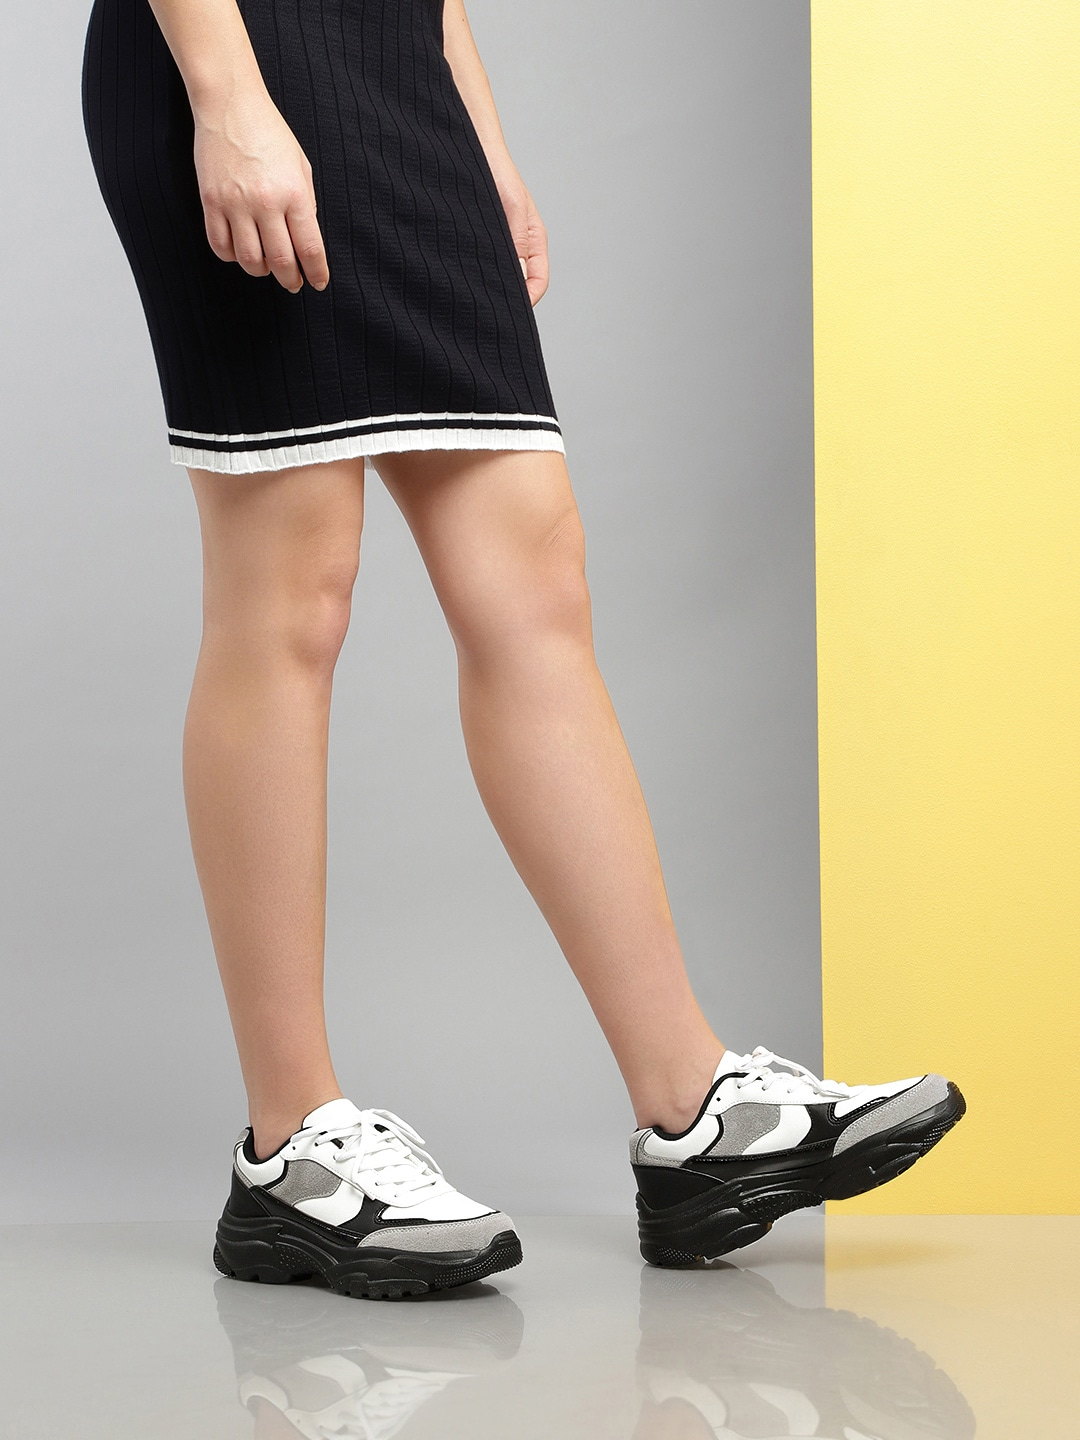 Girlistan - Wearing Sneakers With a Dress - What to Wear and What Not to Wear